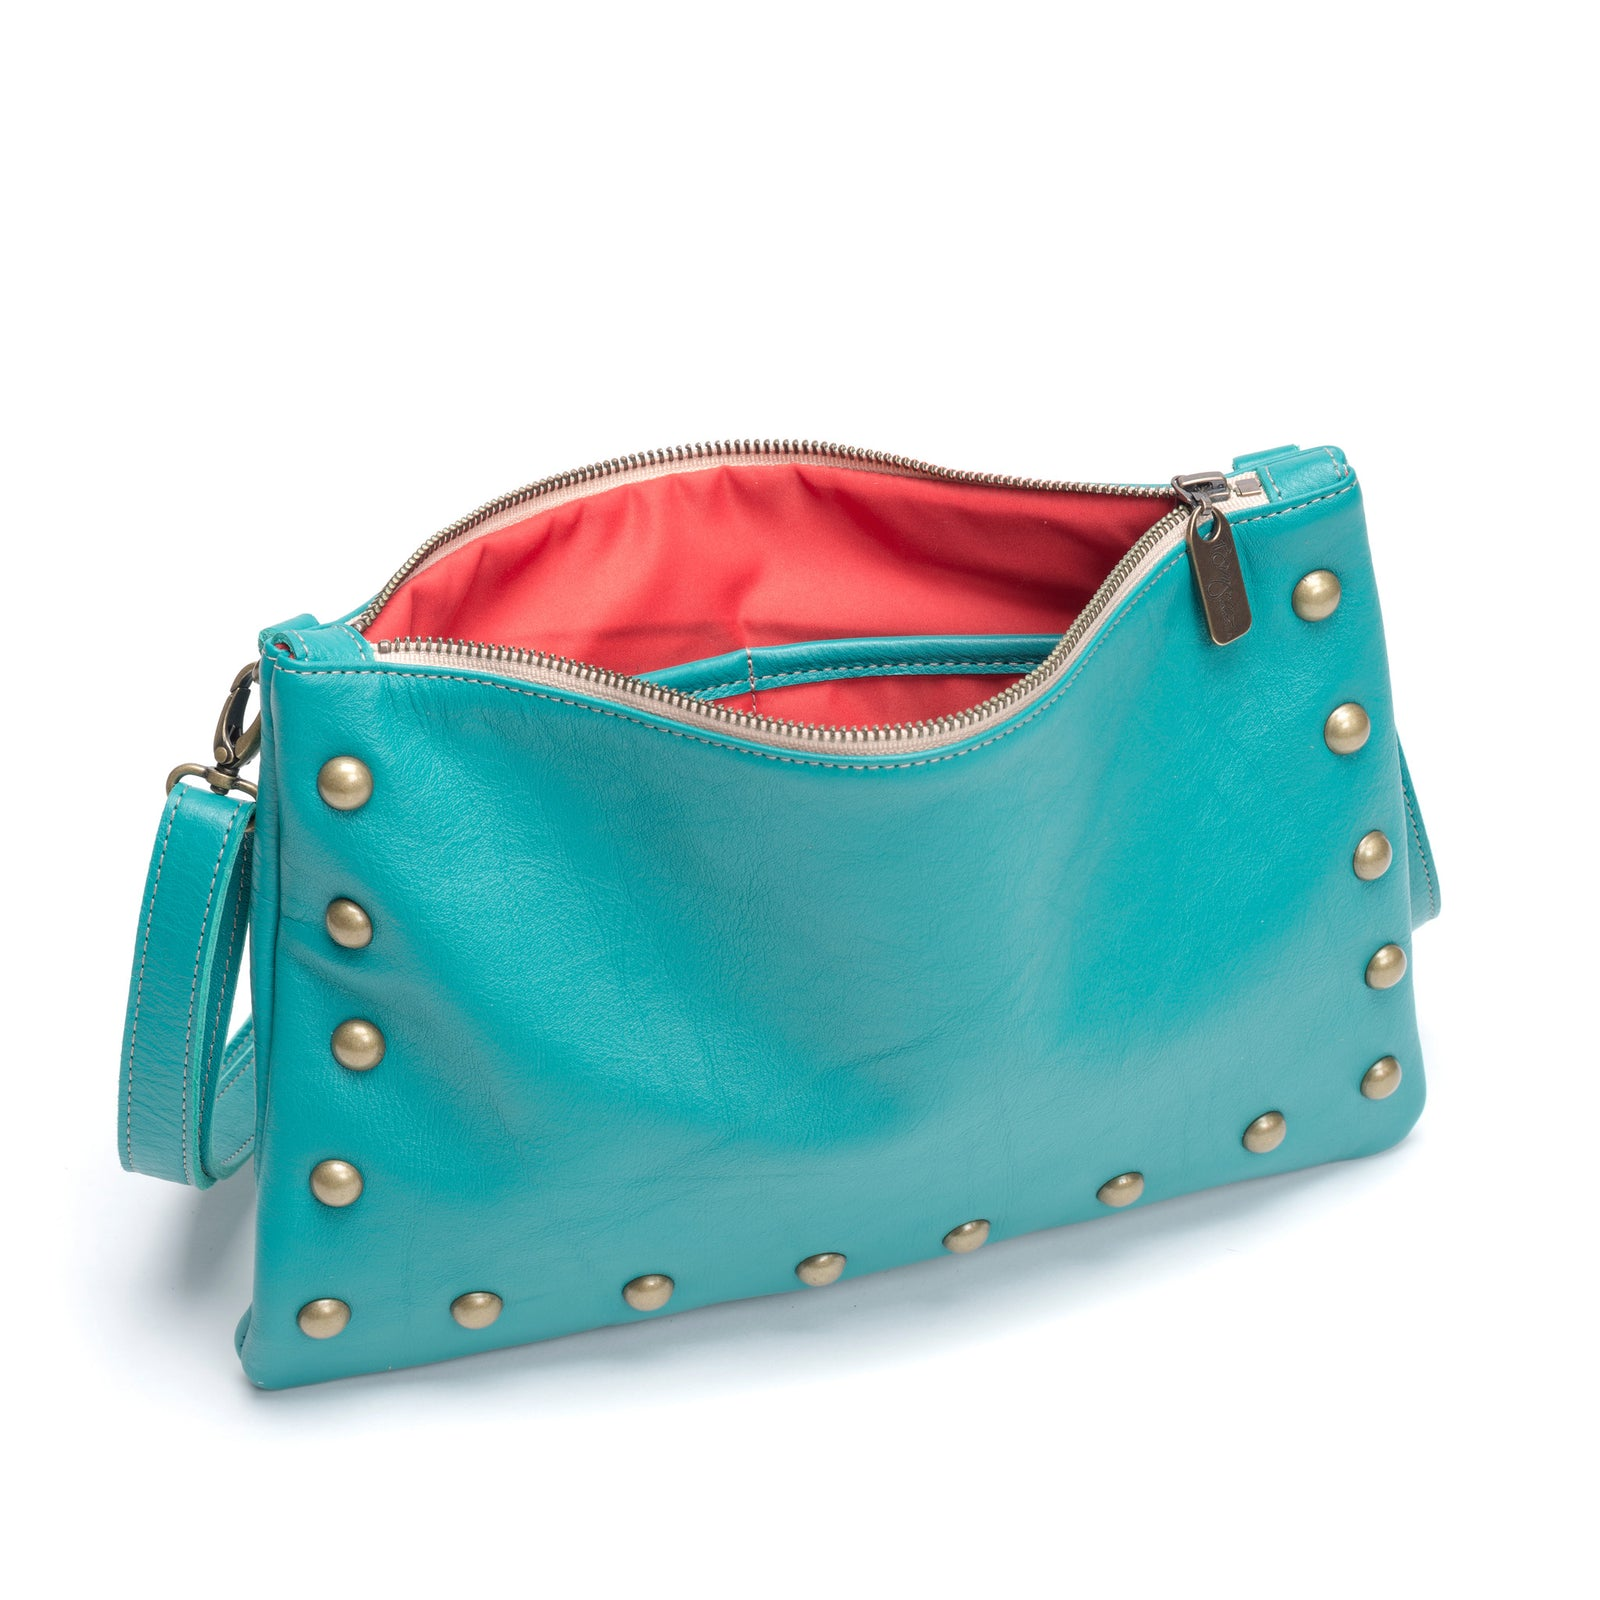 Nikki Clutch/Crossbody - Blue Lagoon - Brynn Capella, Small Crossbody